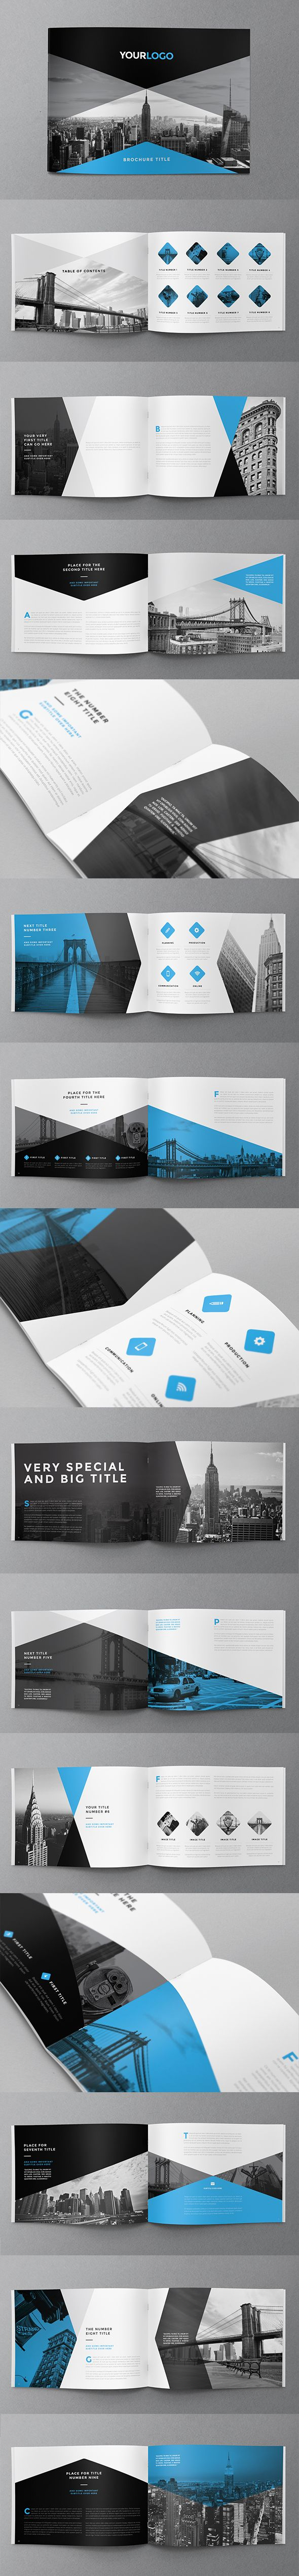 Minimal Modern Black & Blue Brochure. Download here: http://graphicriver.net/item/minimal-modern-black-blue-brochure/11663356?ref=abradesign